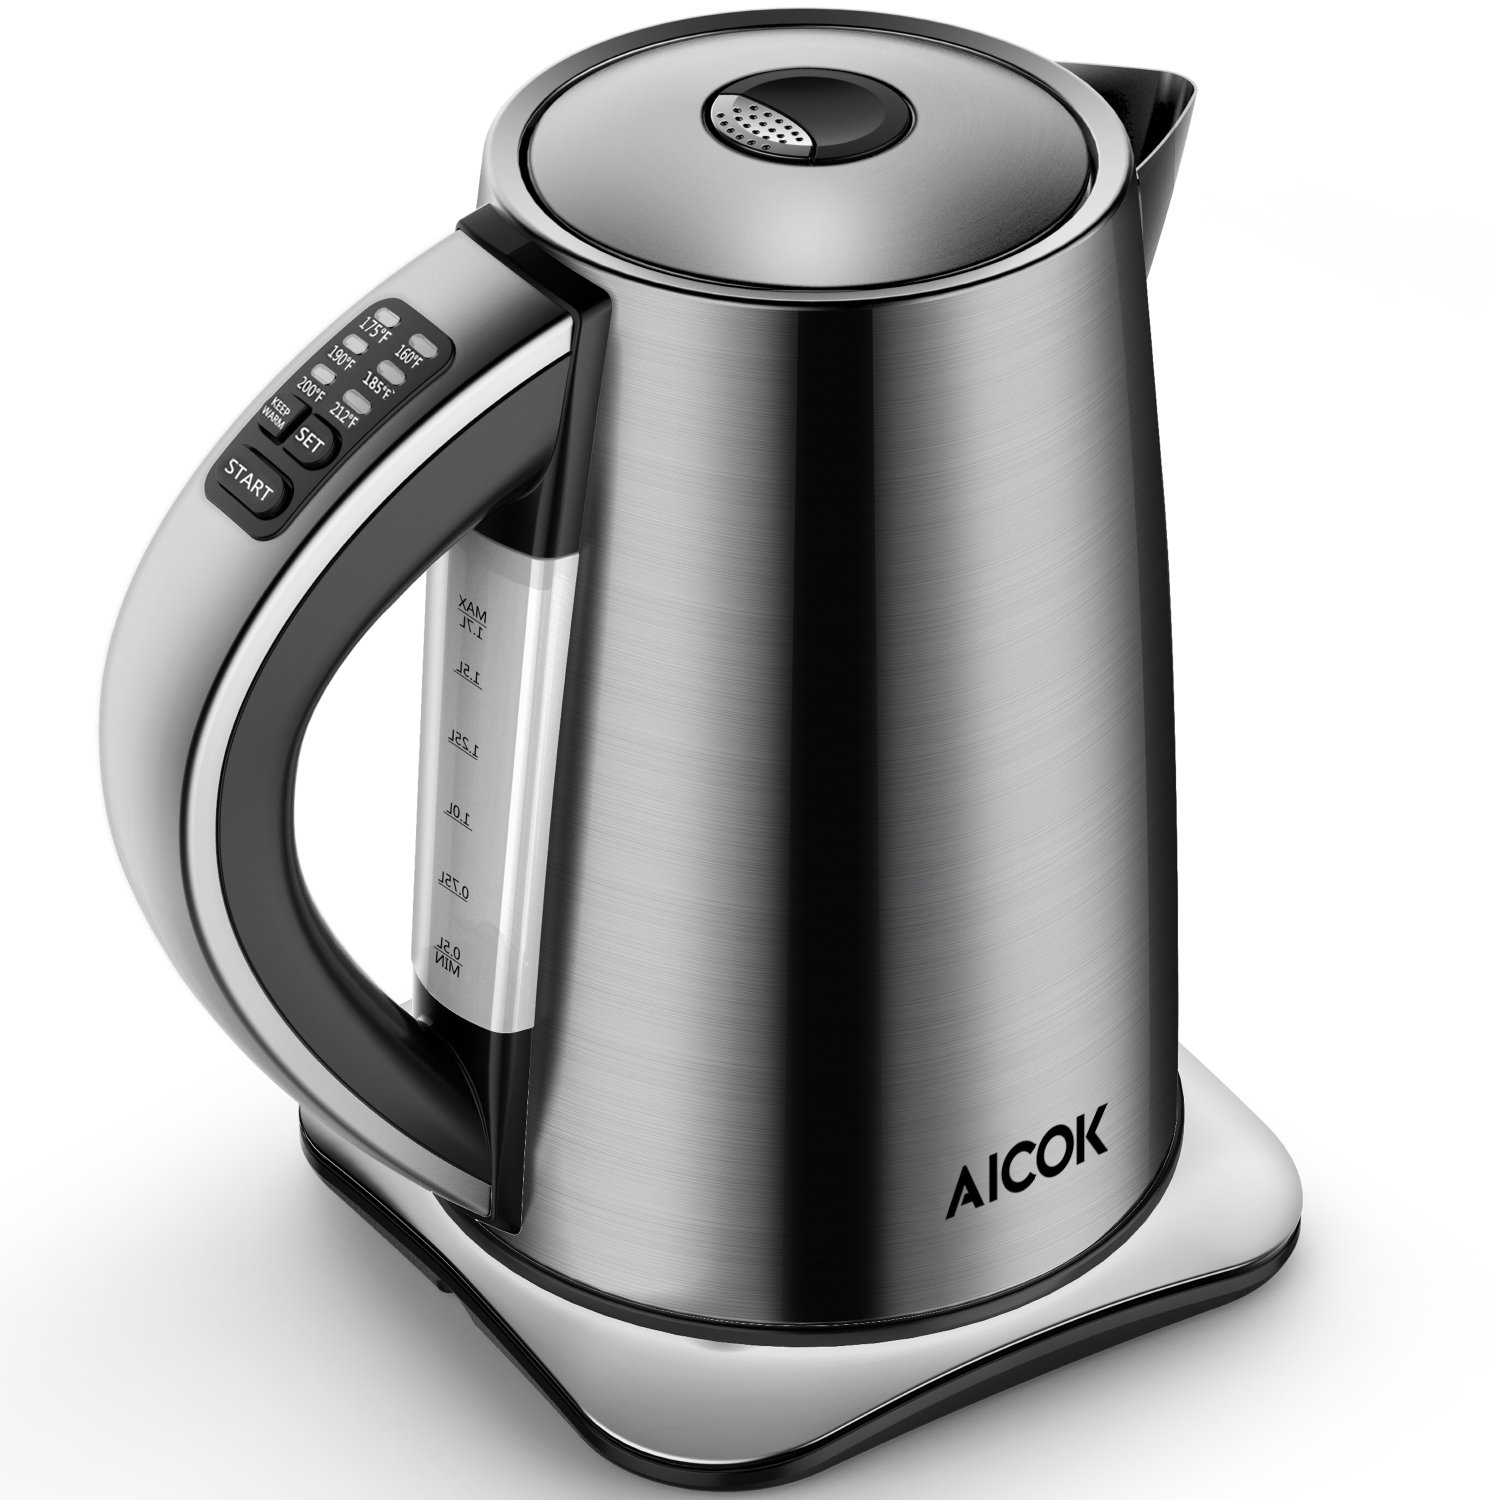 AICOK Electric Kettle Variable Temperature Stainless Steel Tea Kettle, Cordless Electric Water Kettle with 1500W SpeedBoil, Auto Shut Off and Boil-Dry Protection, 1.7-Liter Boiler